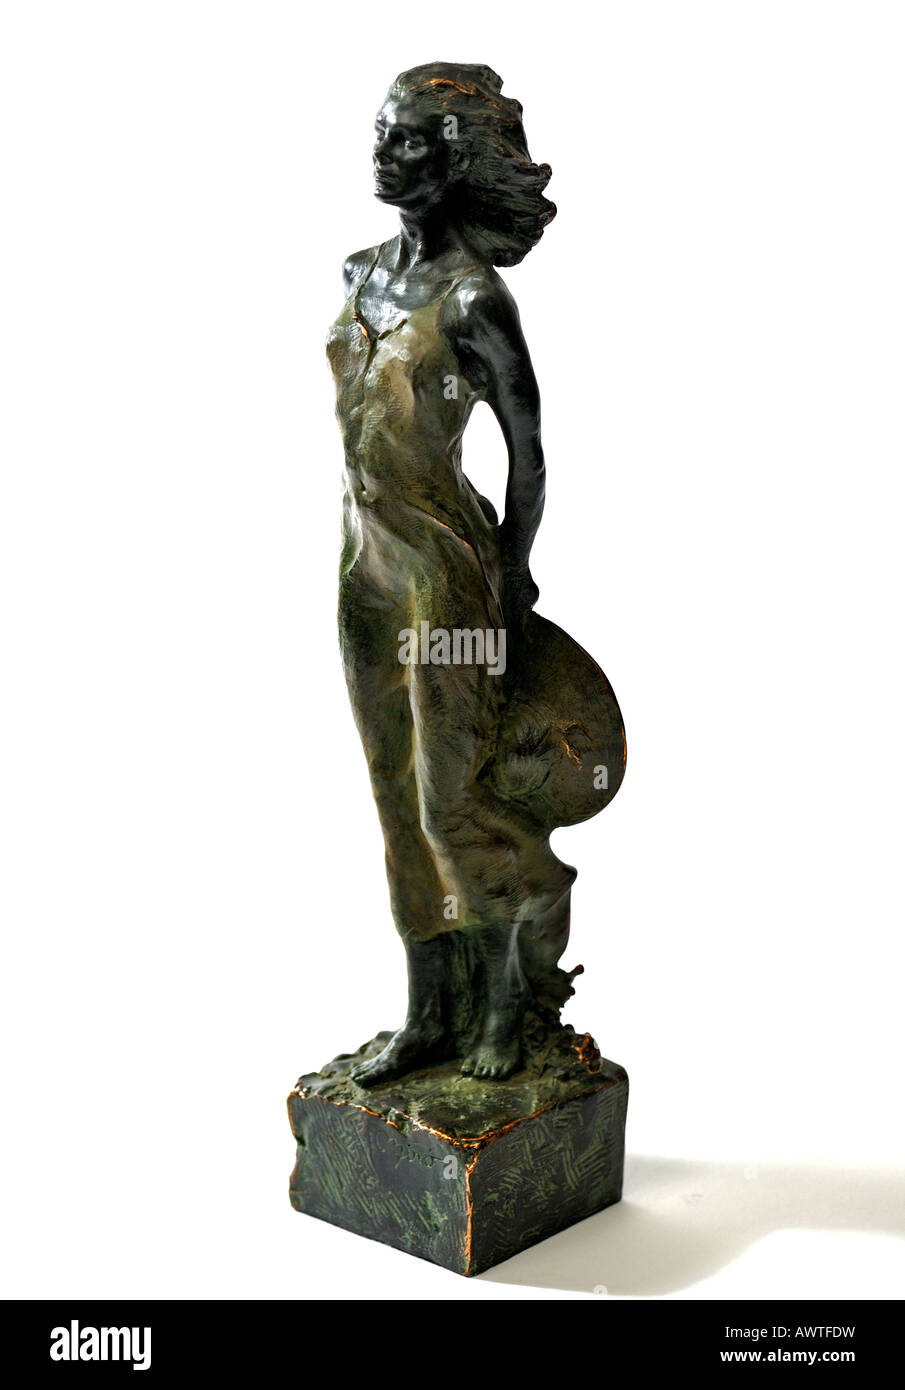 Bronze Resin Statuette Sculpture Al Viento by Miro Spanish sculptor of Barcelona Spain Limited Edition  EDITORIAL - Stock Image